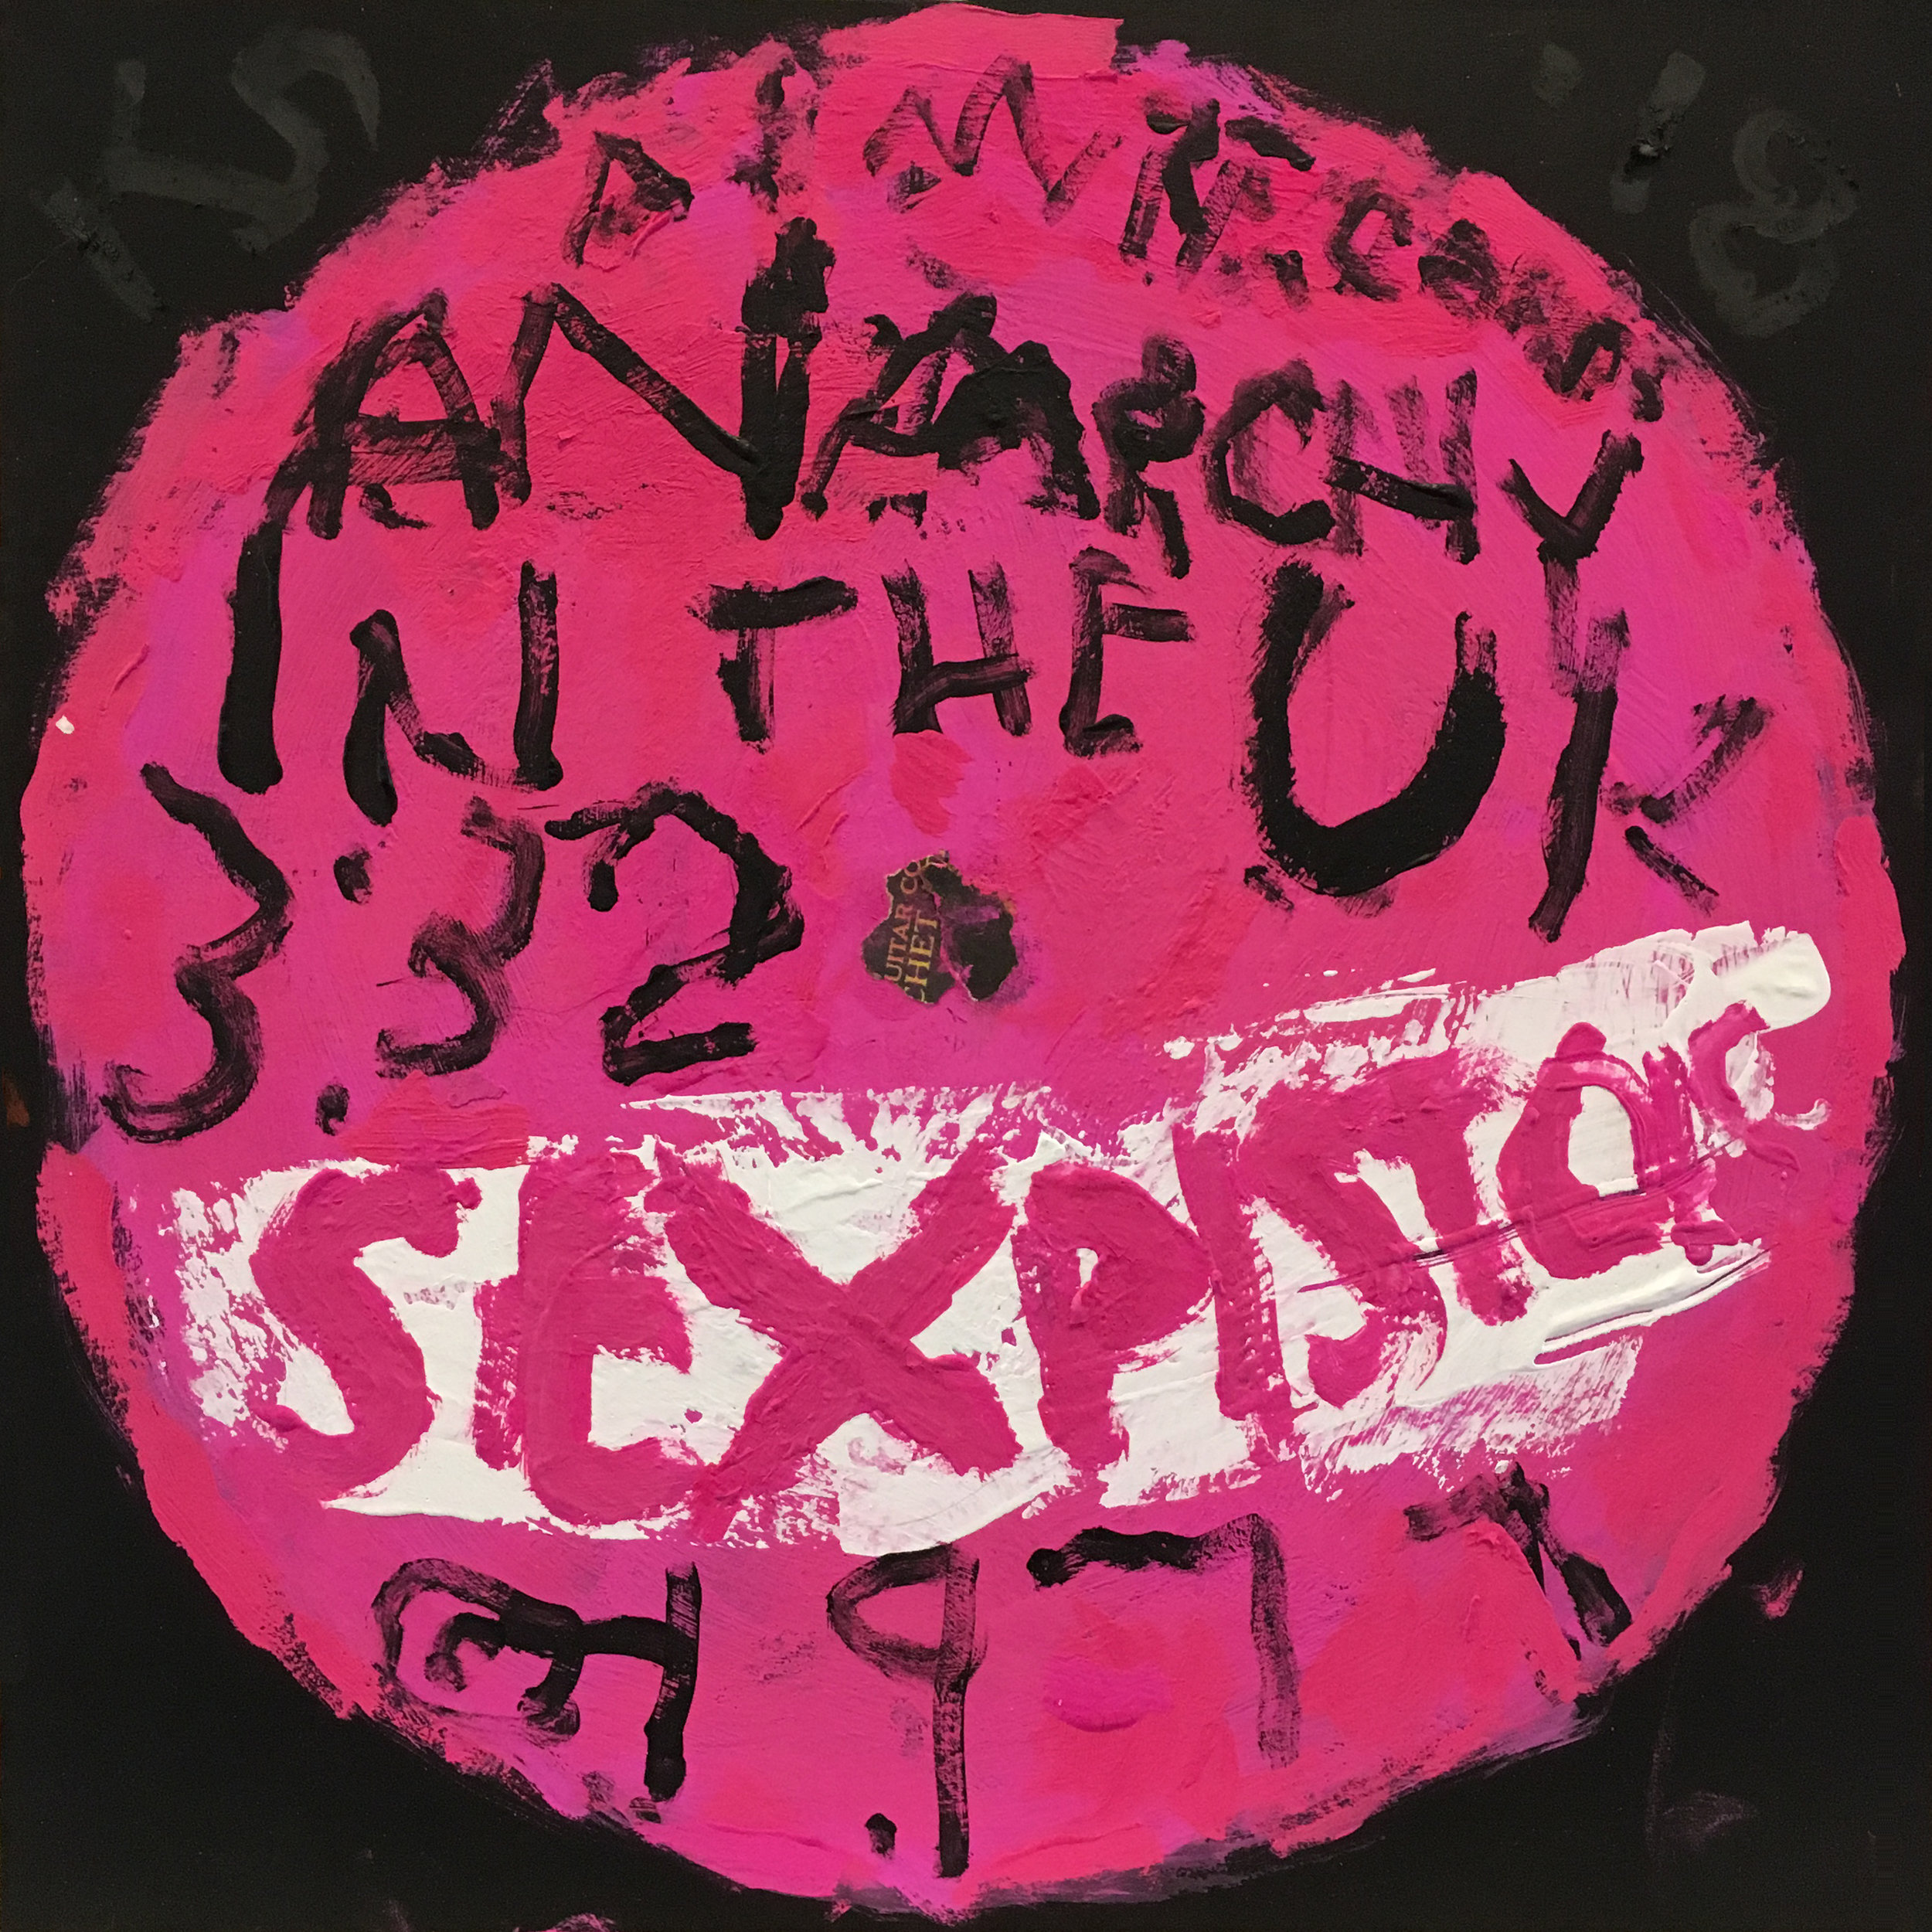 Sex Pistols / Anarchy in the UK #2